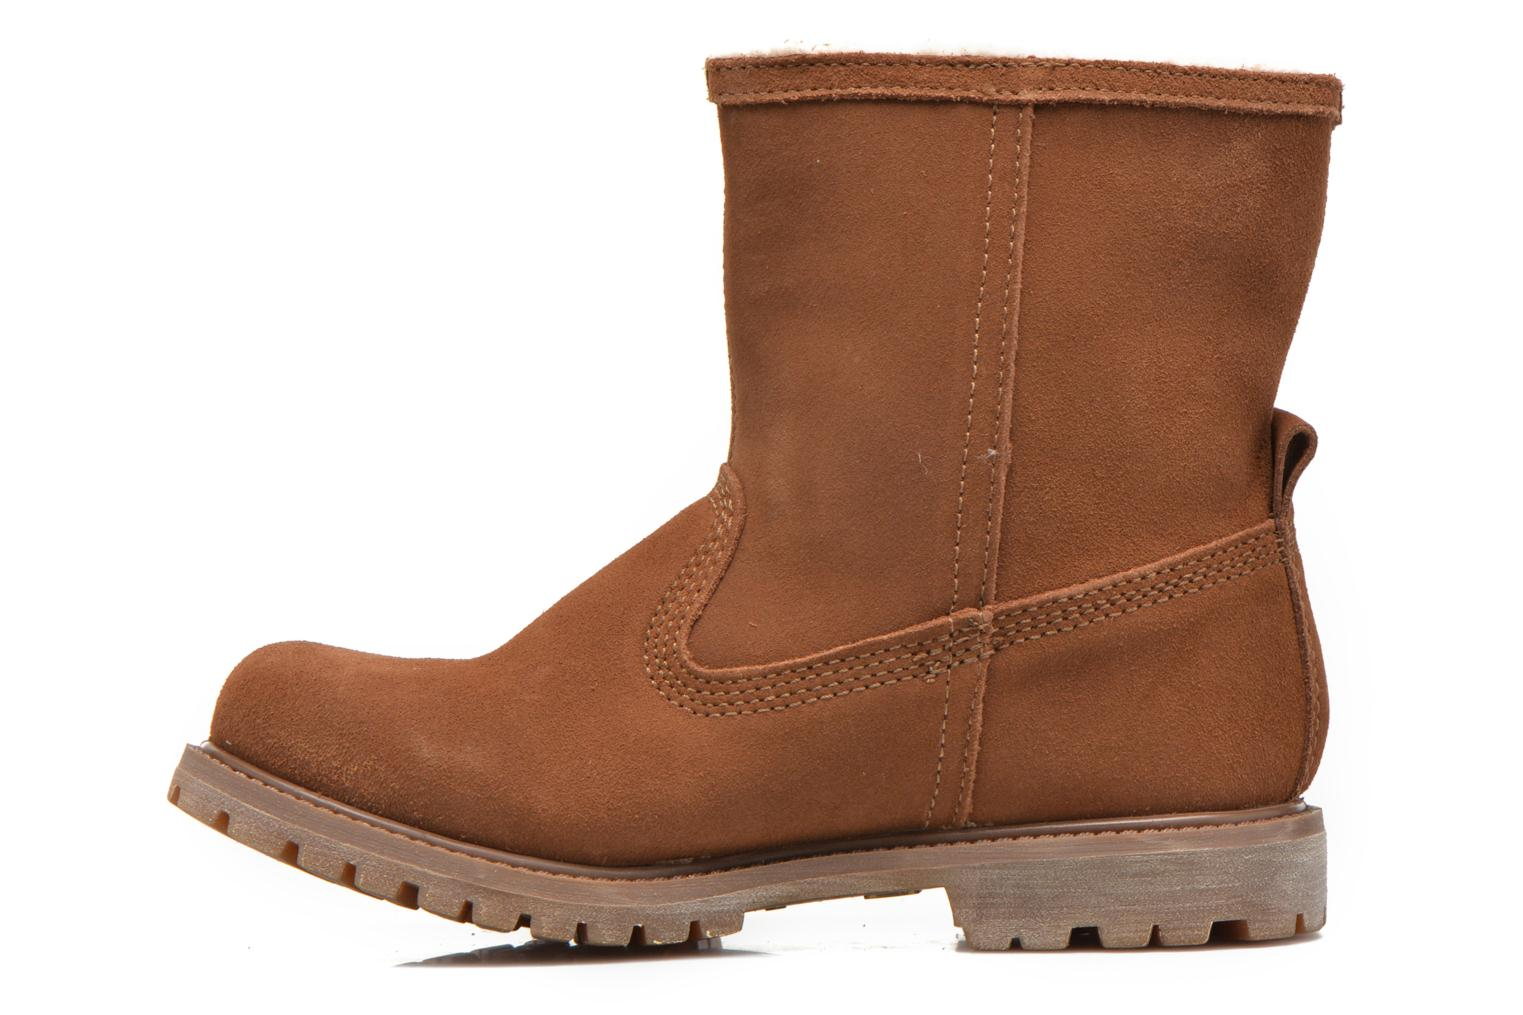 Bottines et boots Timberland Authentics Warm Line Marron vue face